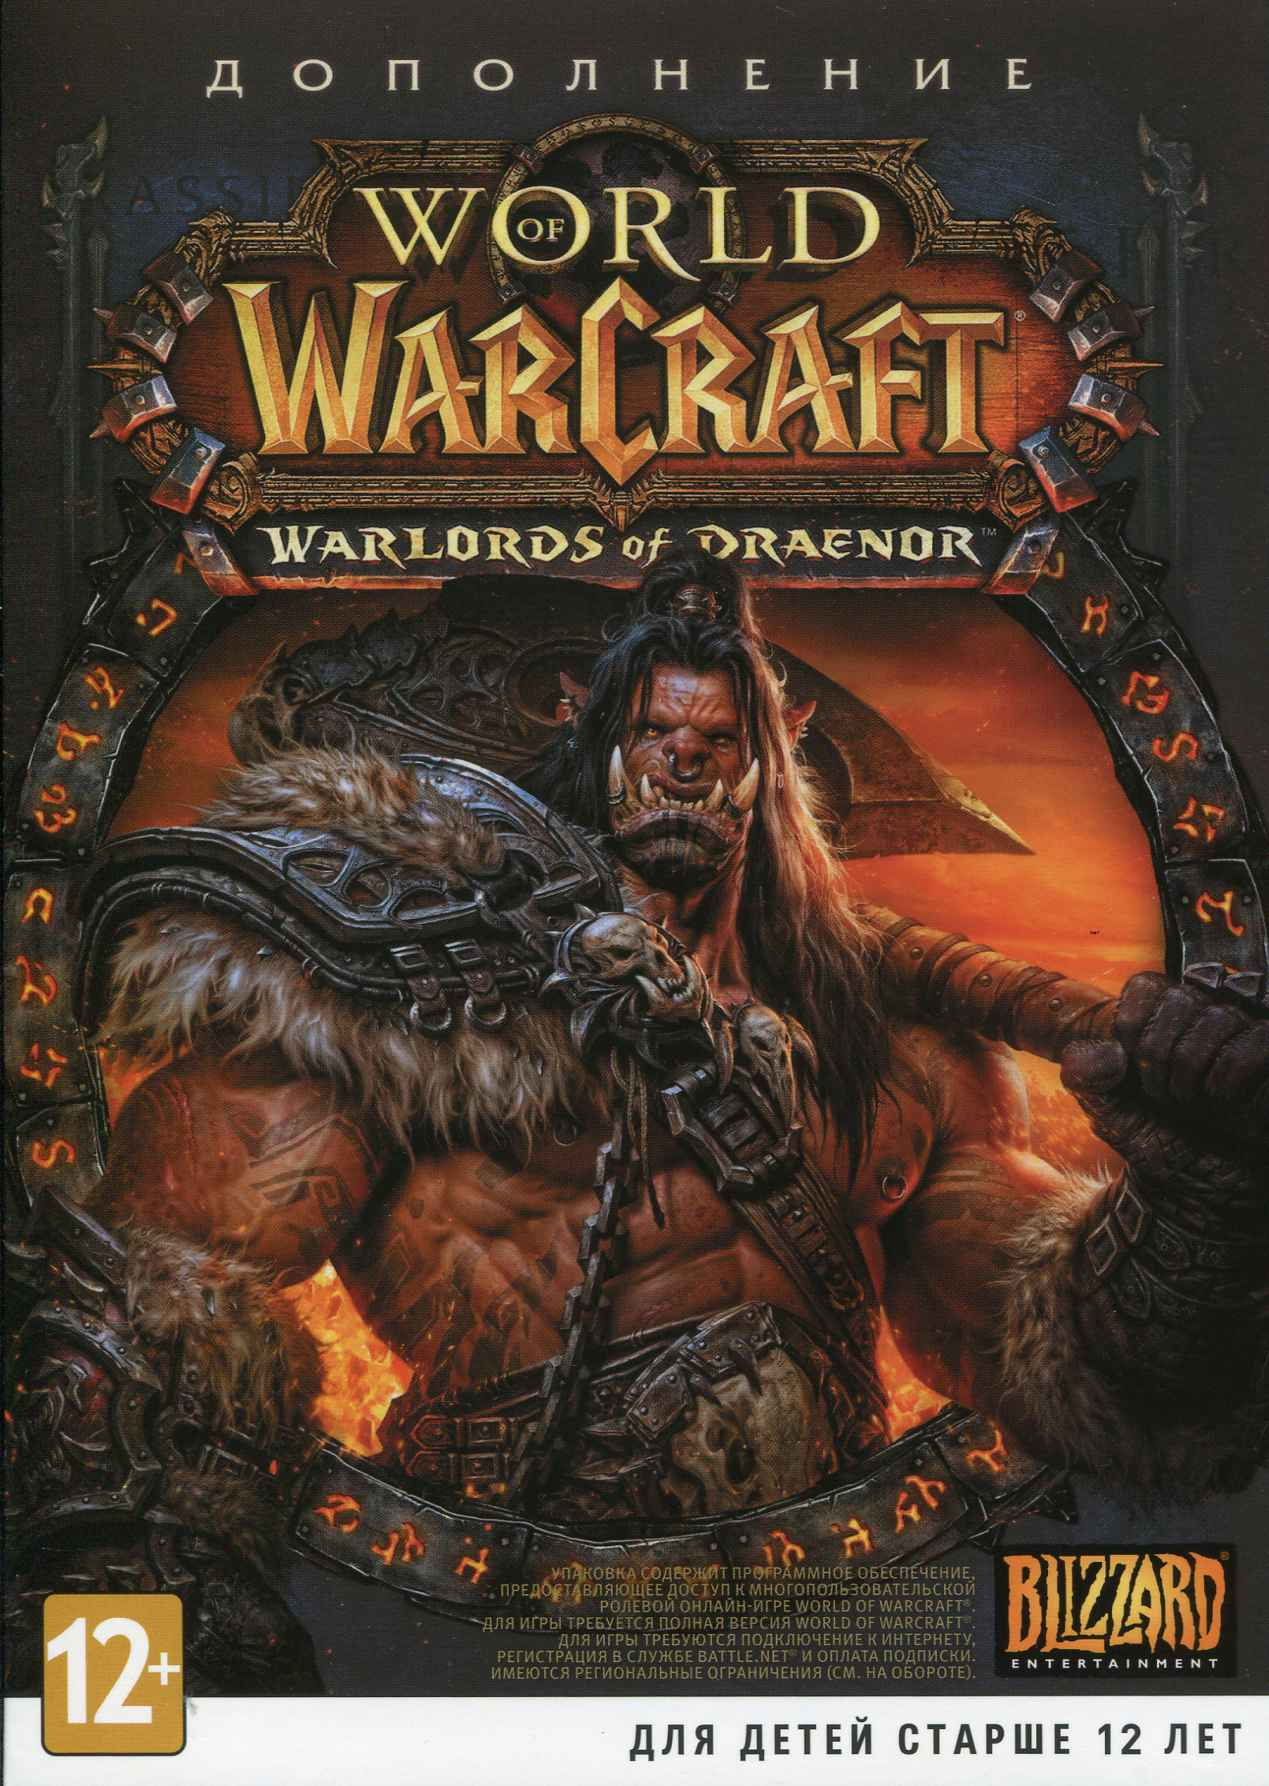 World of Warcraft: Warlords of Draenor (RUS) +90 LVL